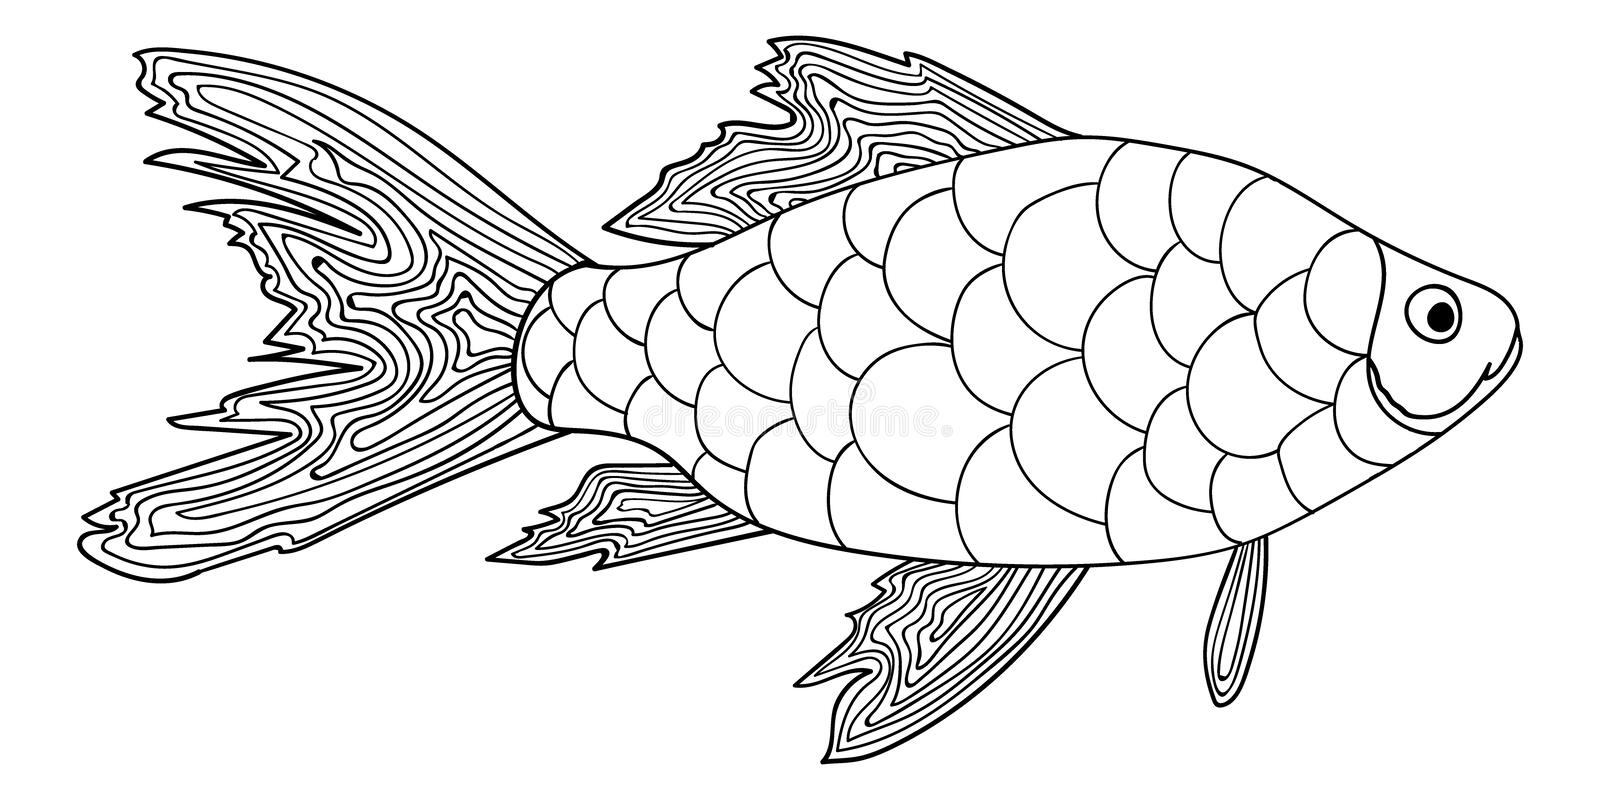 detailed fish coloring pages walleye drawing at getdrawings free download detailed fish coloring pages